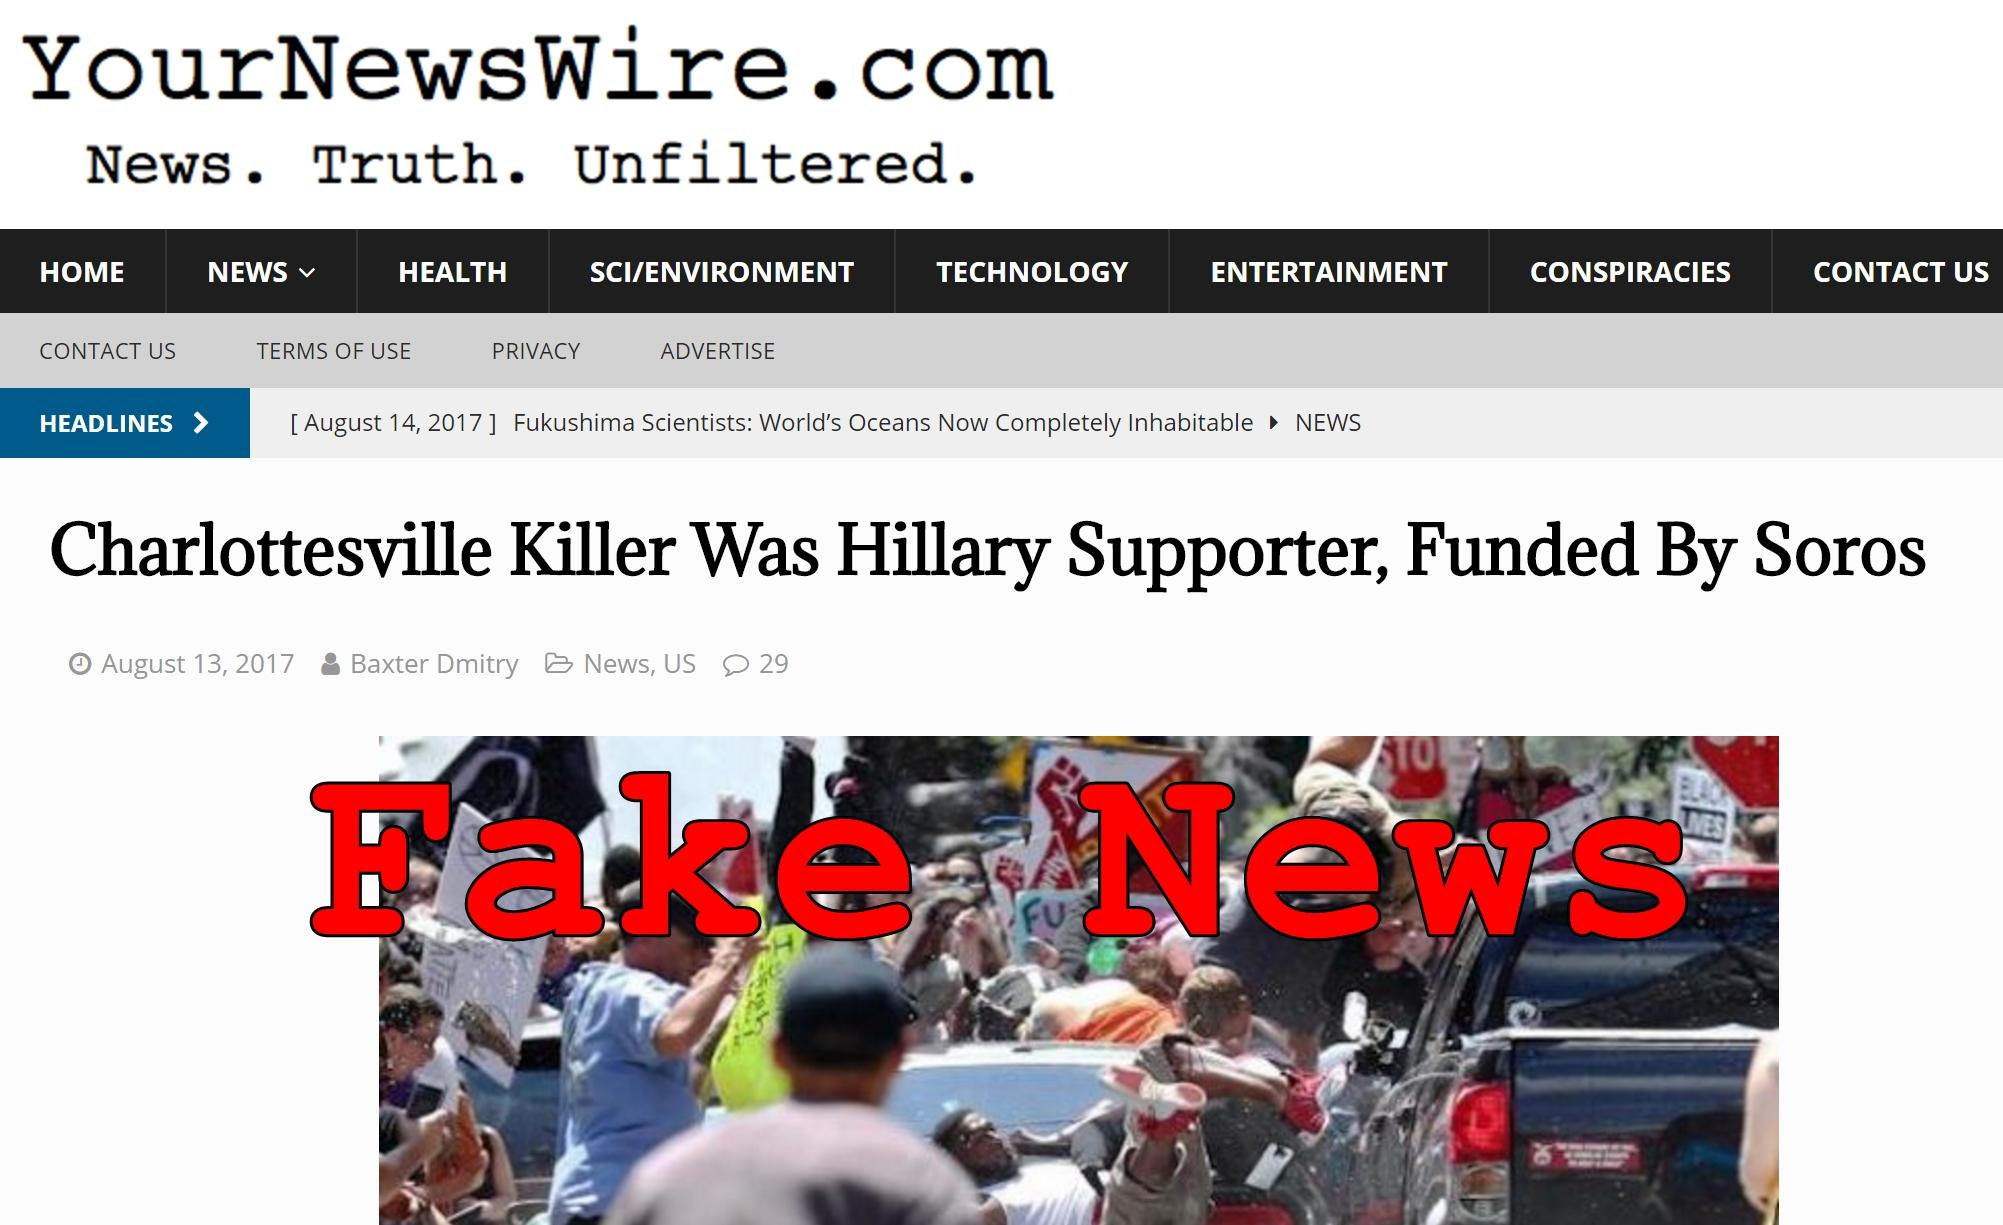 Fake News: NO Evidence Charlottesville Killer Was Hillary Supporter Funded By Soros